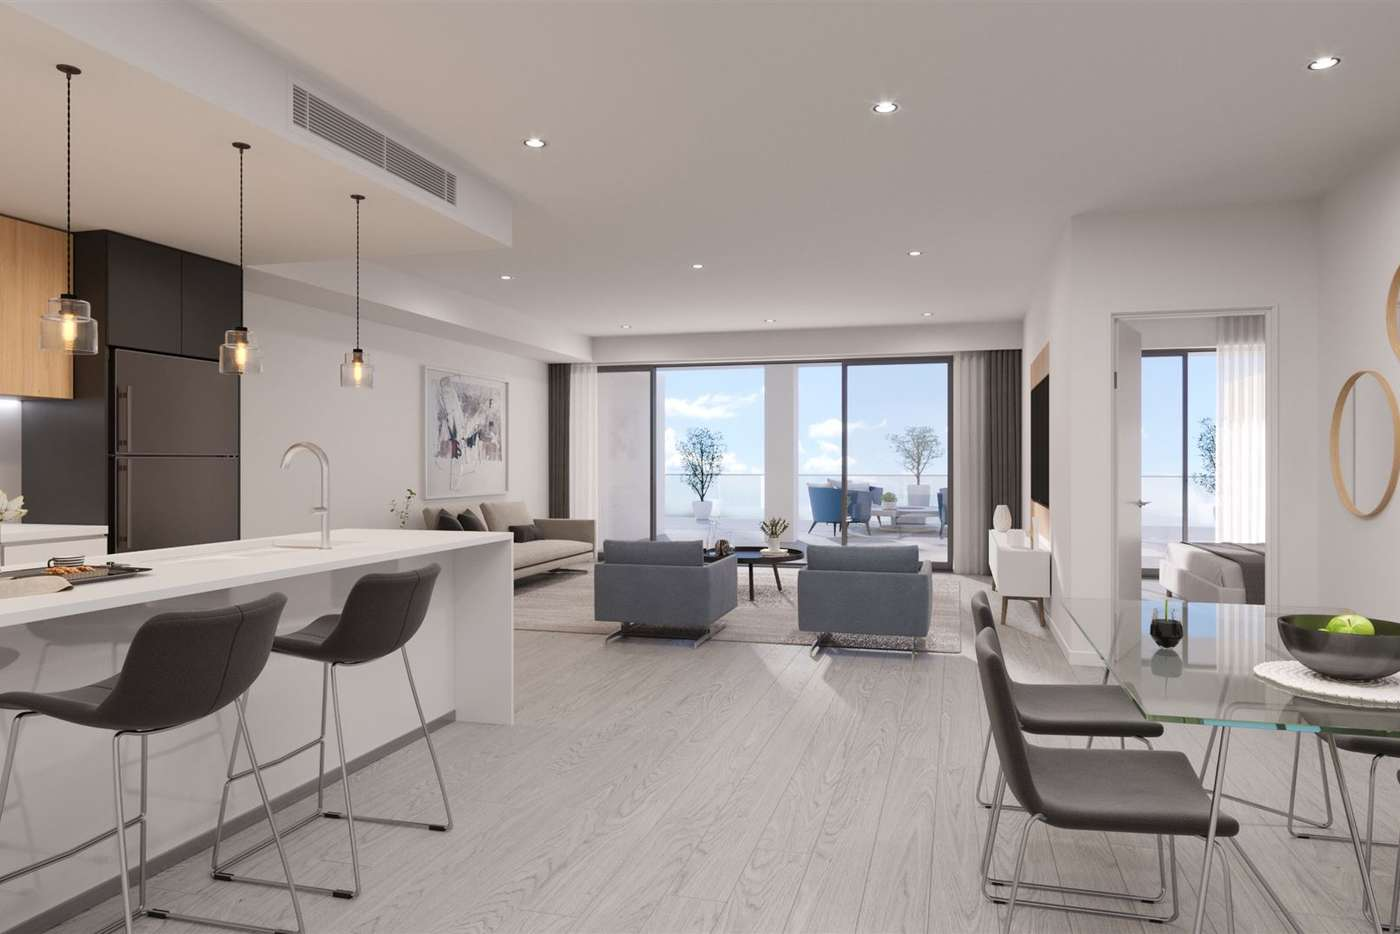 Main view of Homely apartment listing, 153 Burswood Road, Burswood WA 6100